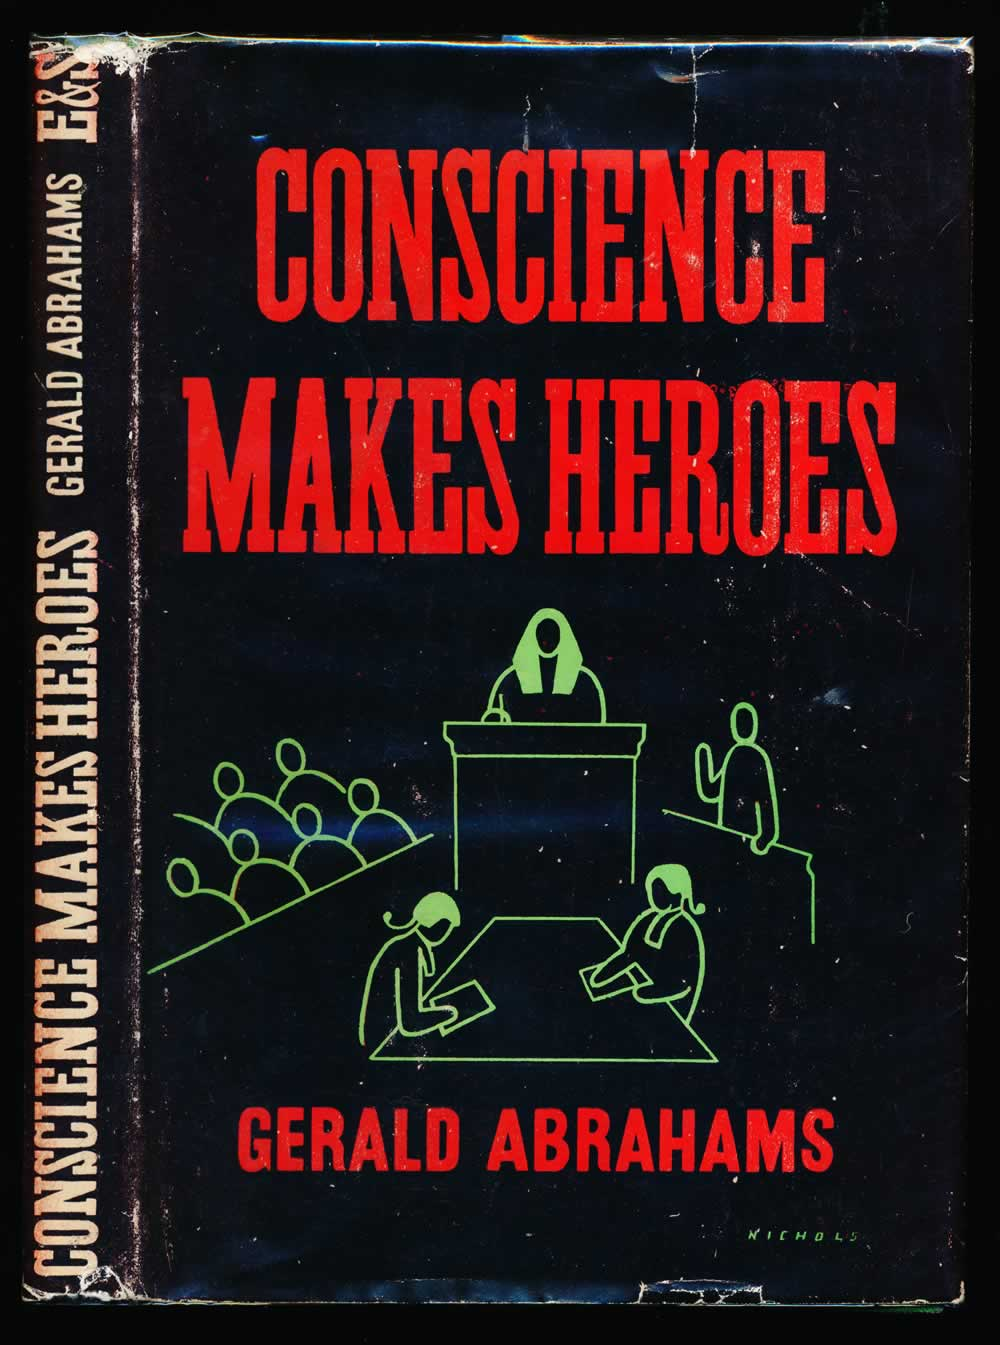 Conscience makes heroes